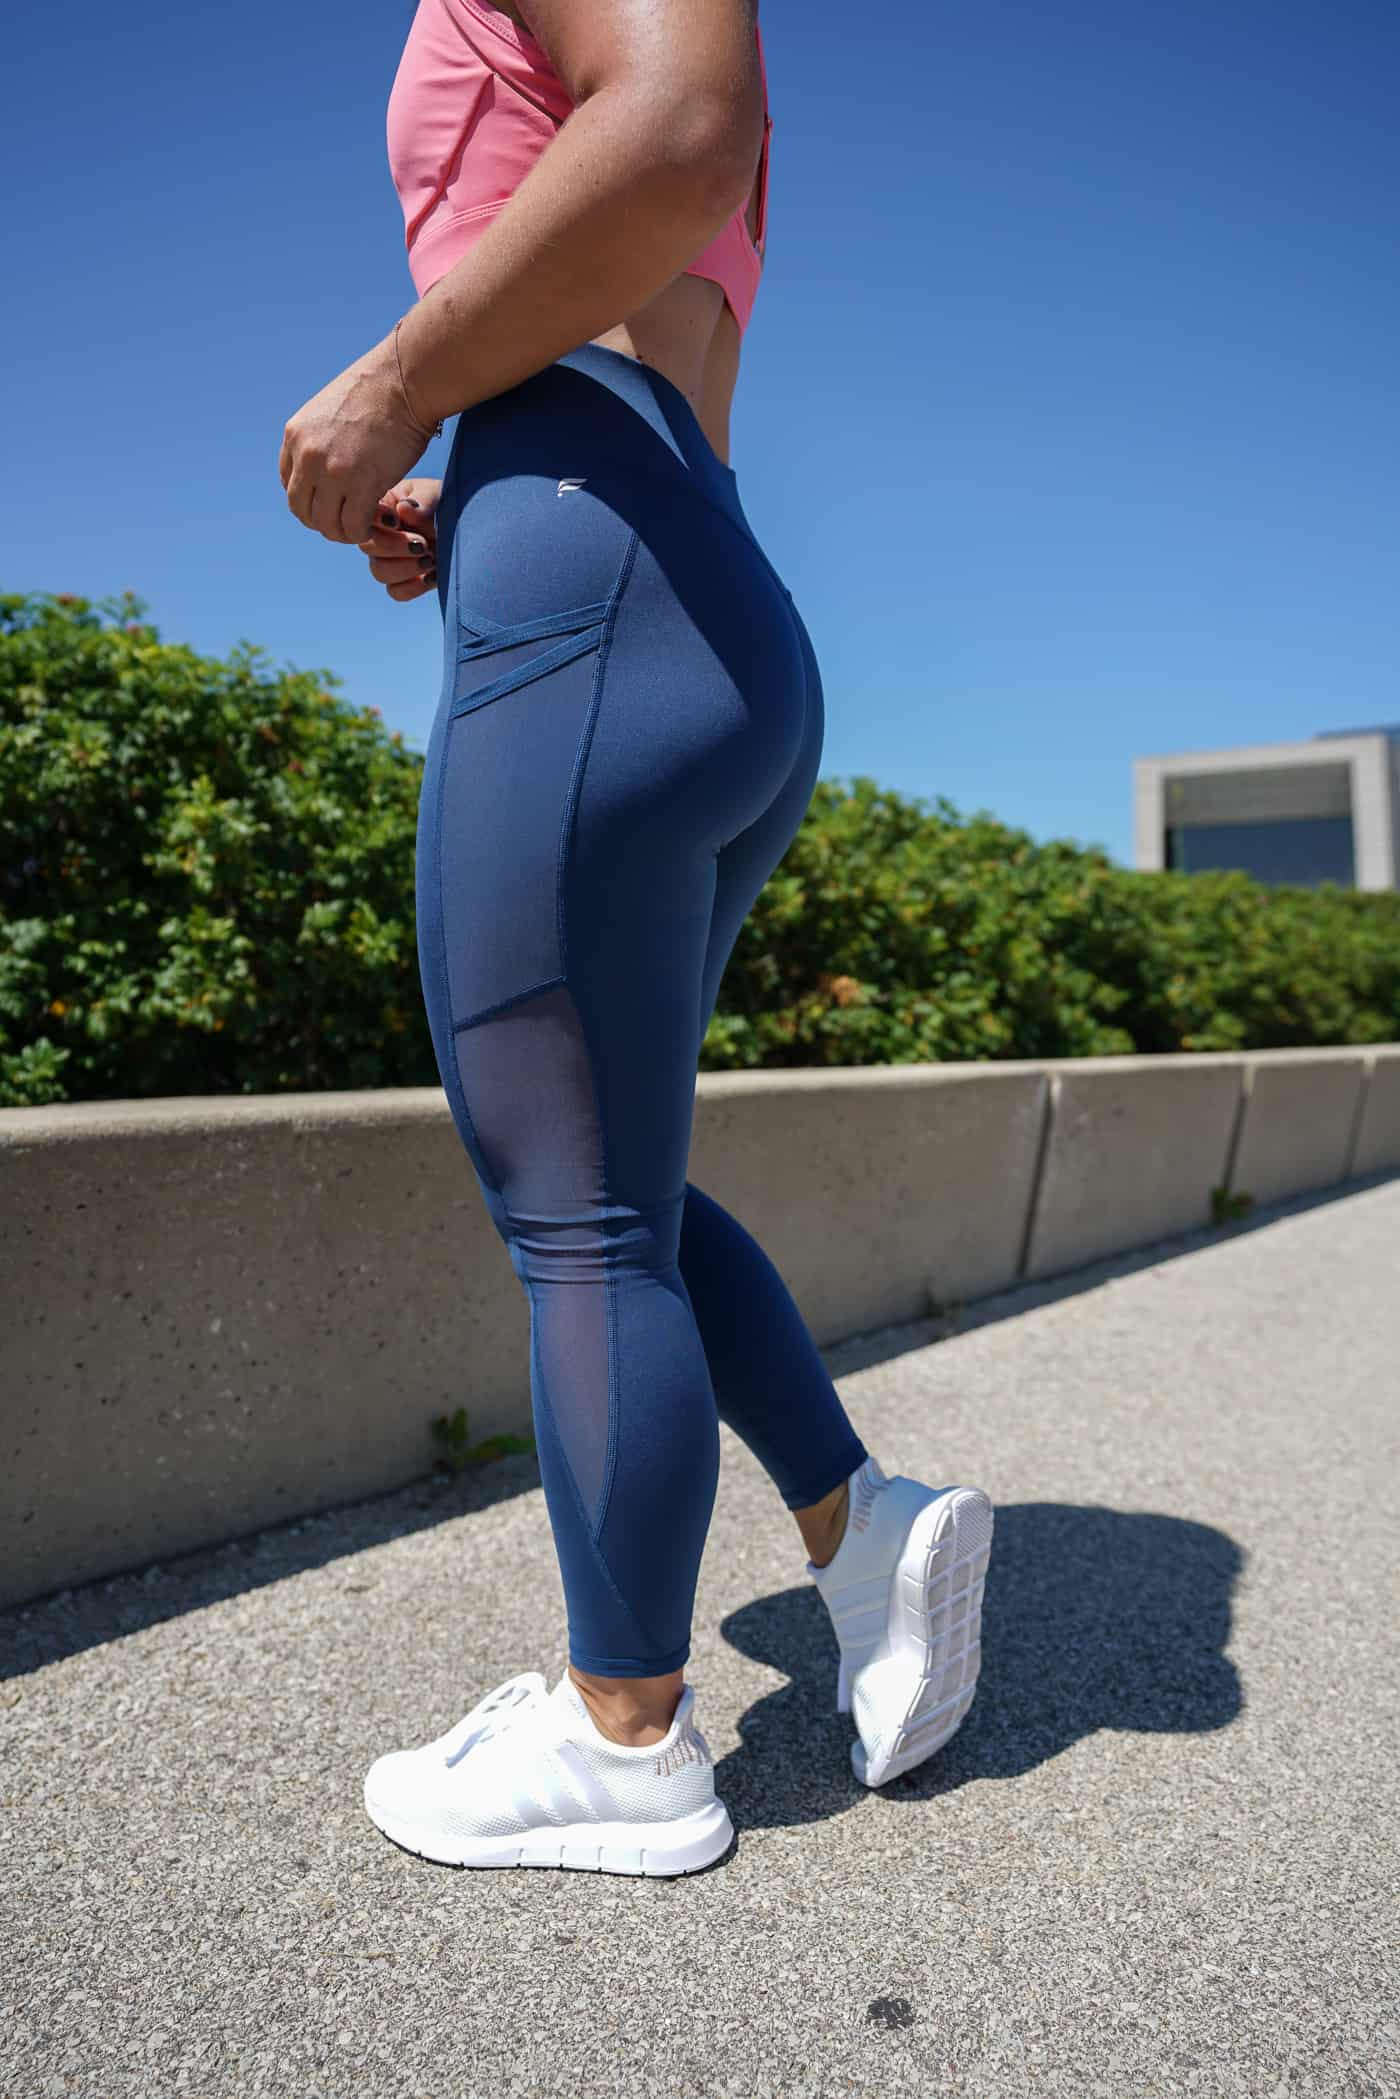 A Lily Love Affair sharing her Fabletics review wearing blue leggings, white adidas sneakers and a Fabletics sports bra